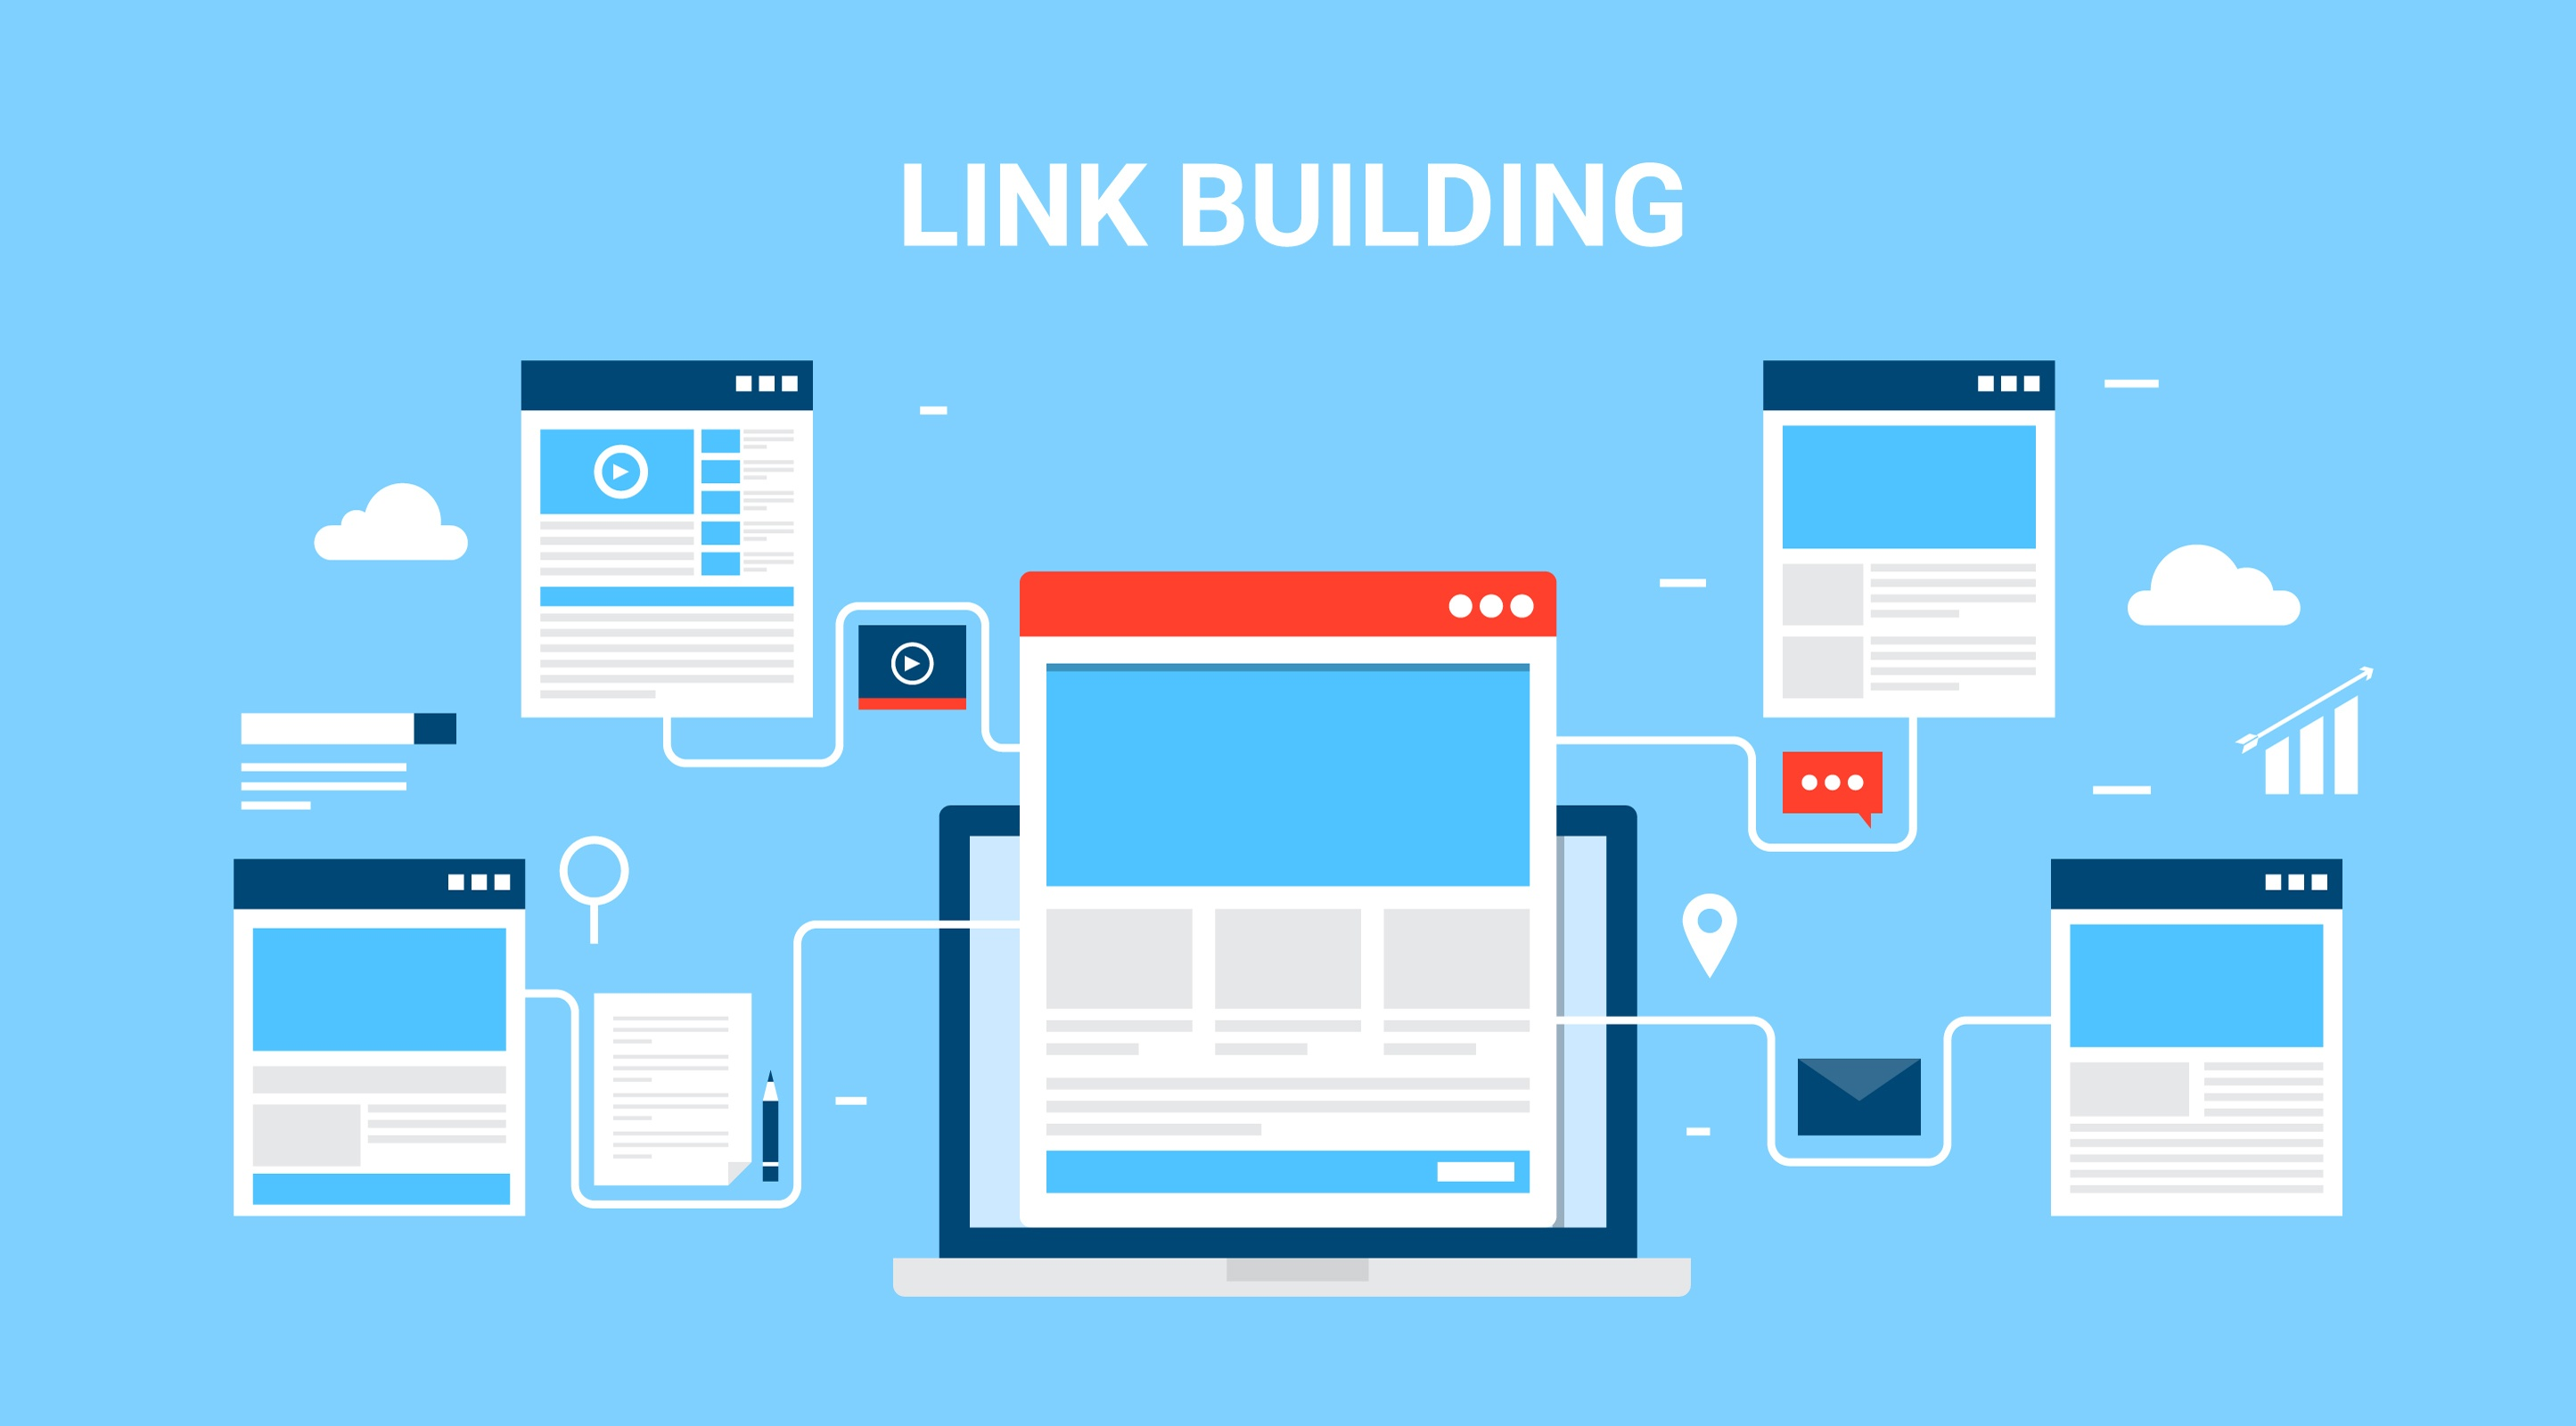 link building strategies 2018, link building strategies 2017, advanced link building strategies, link building definition, what is link building, types of link building, link building tutorial, link building sites